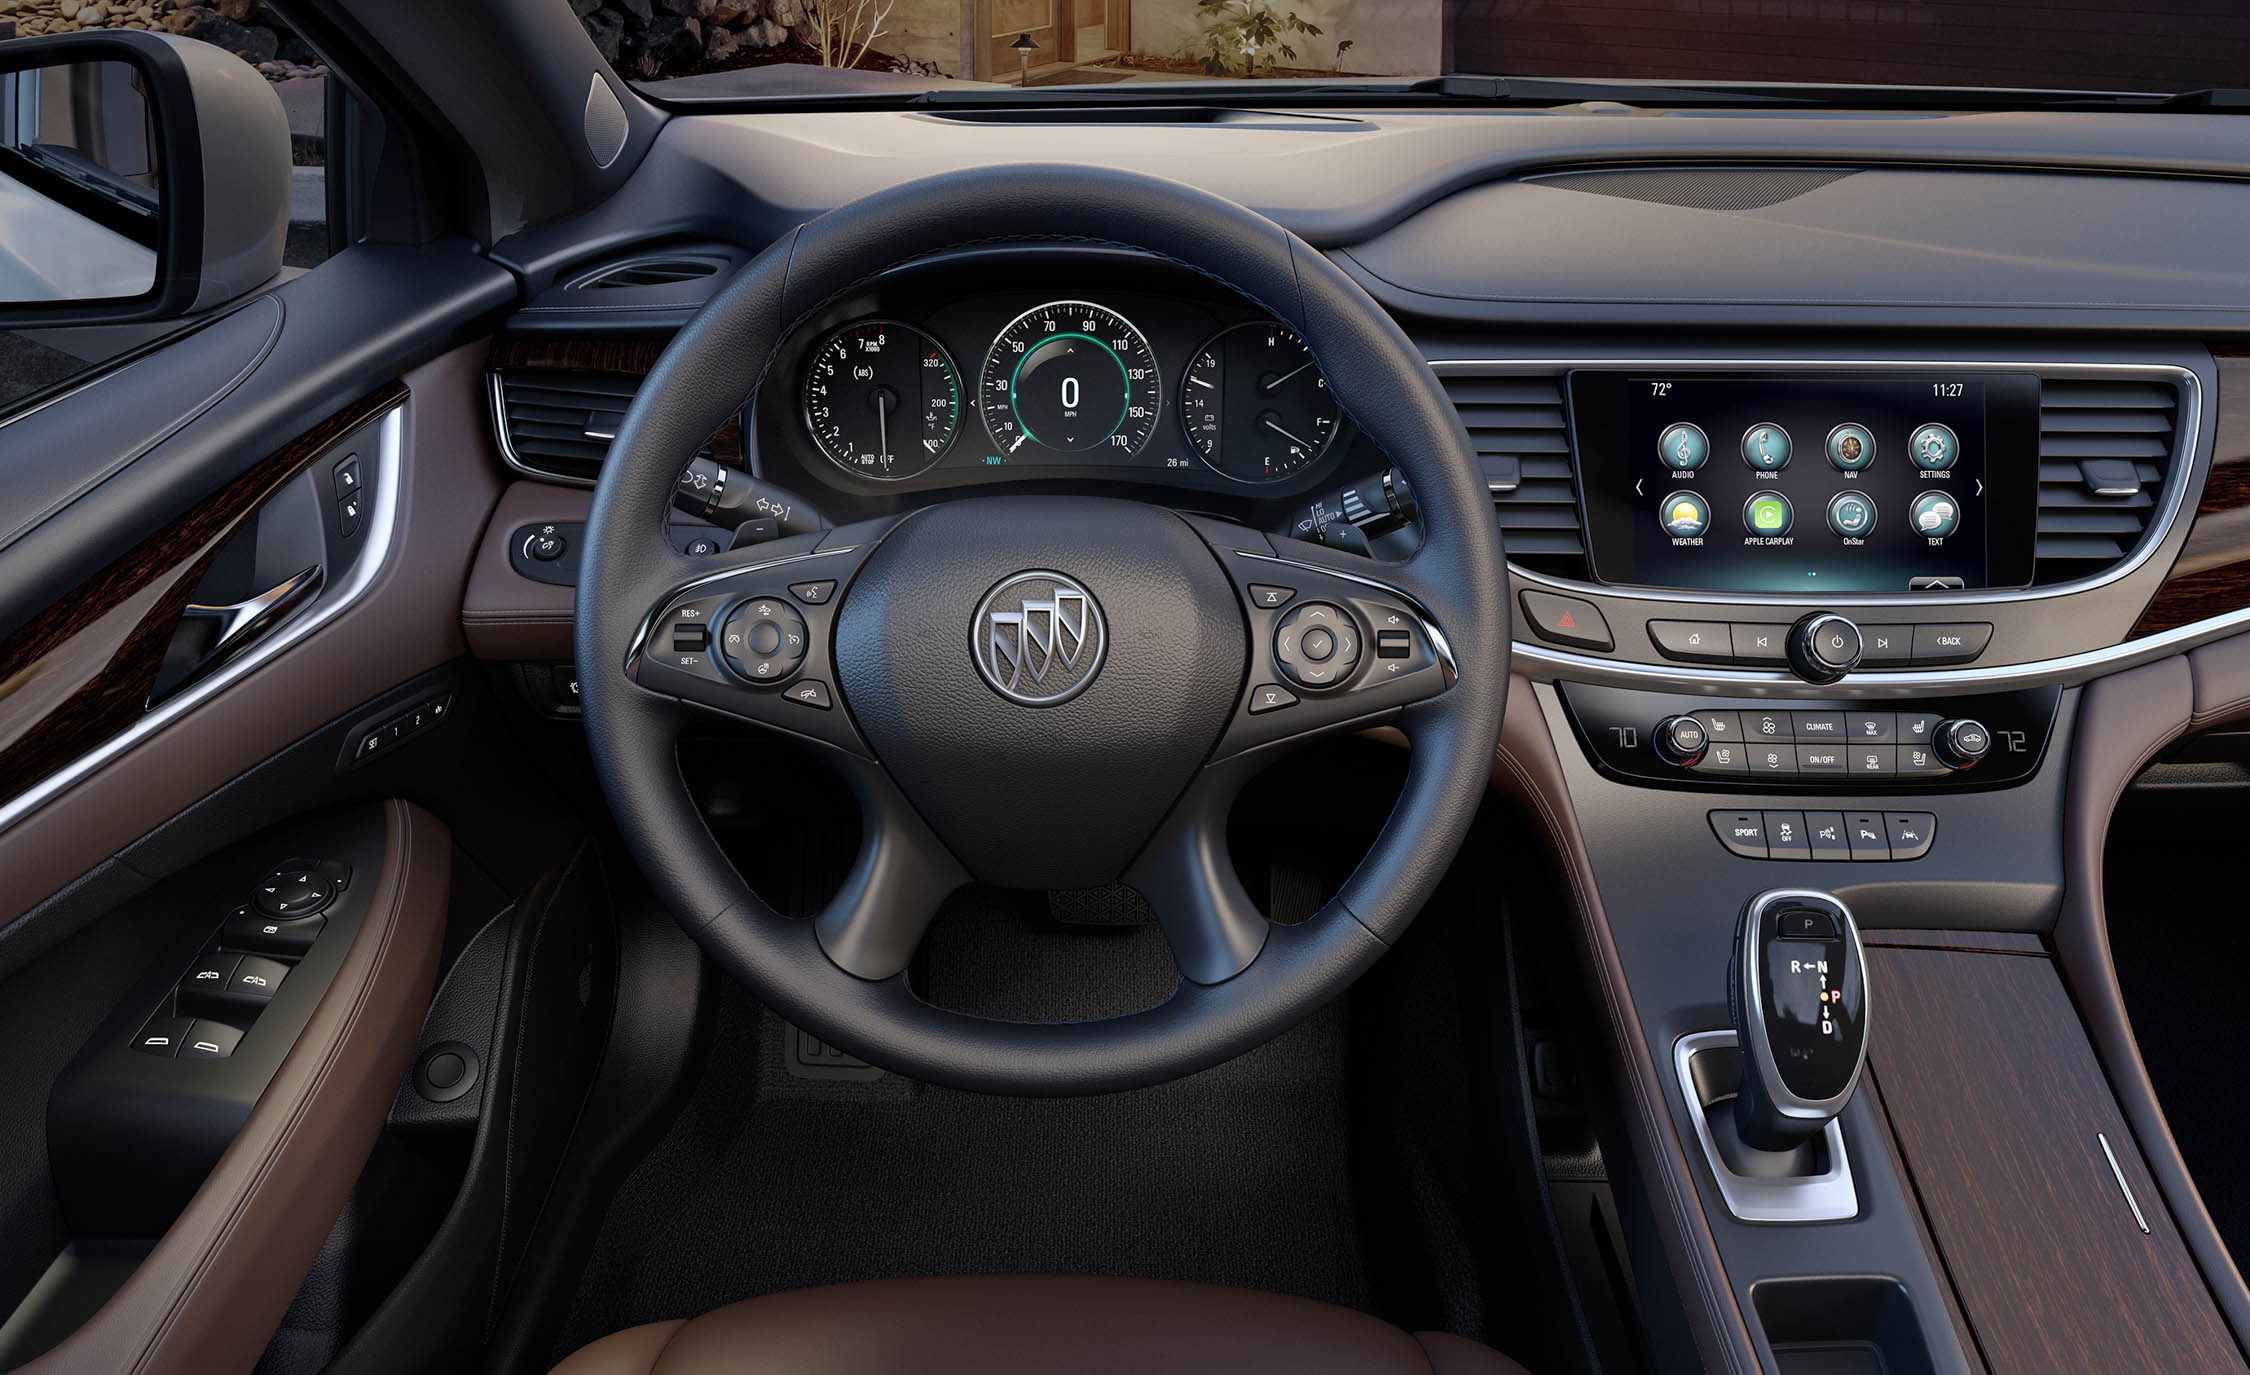 2017 Buick Lacrosse Cockpit And Speedometer (Photo 15 of 26)